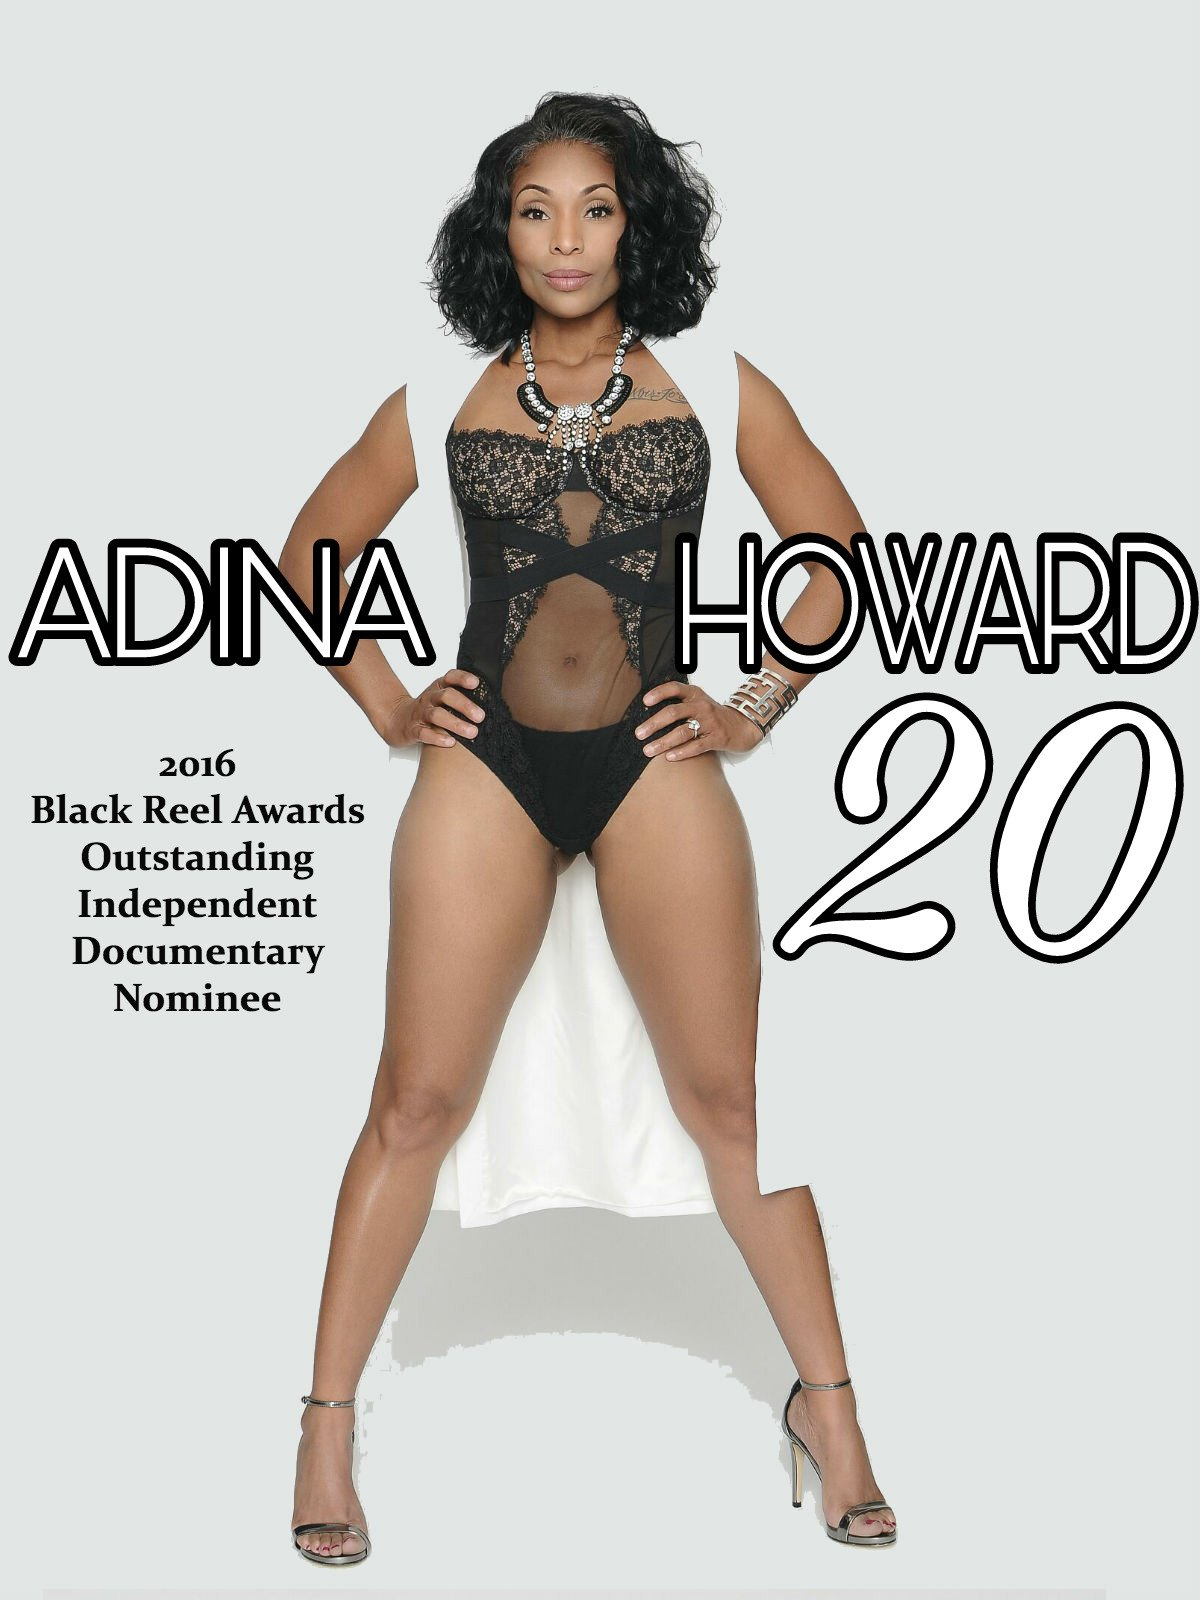 Adina Howard 20 on Amazon Prime Instant Video UK